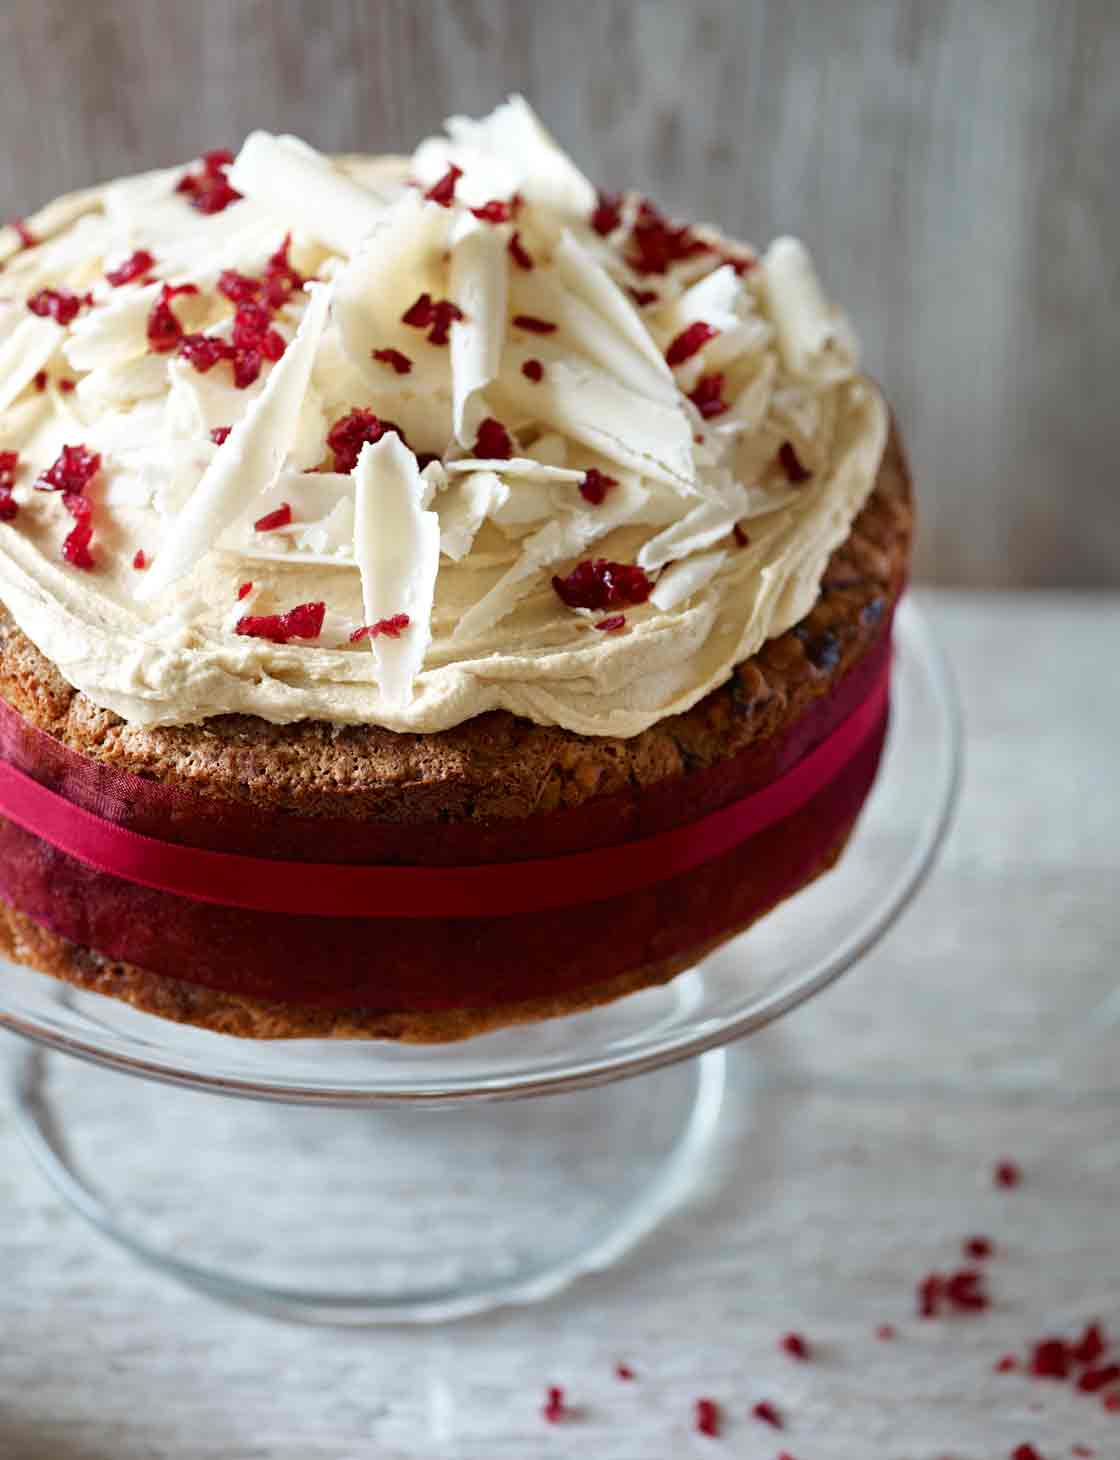 Cranberry Christmas Cake.White Chocolate And Cranberry Christmas Cake